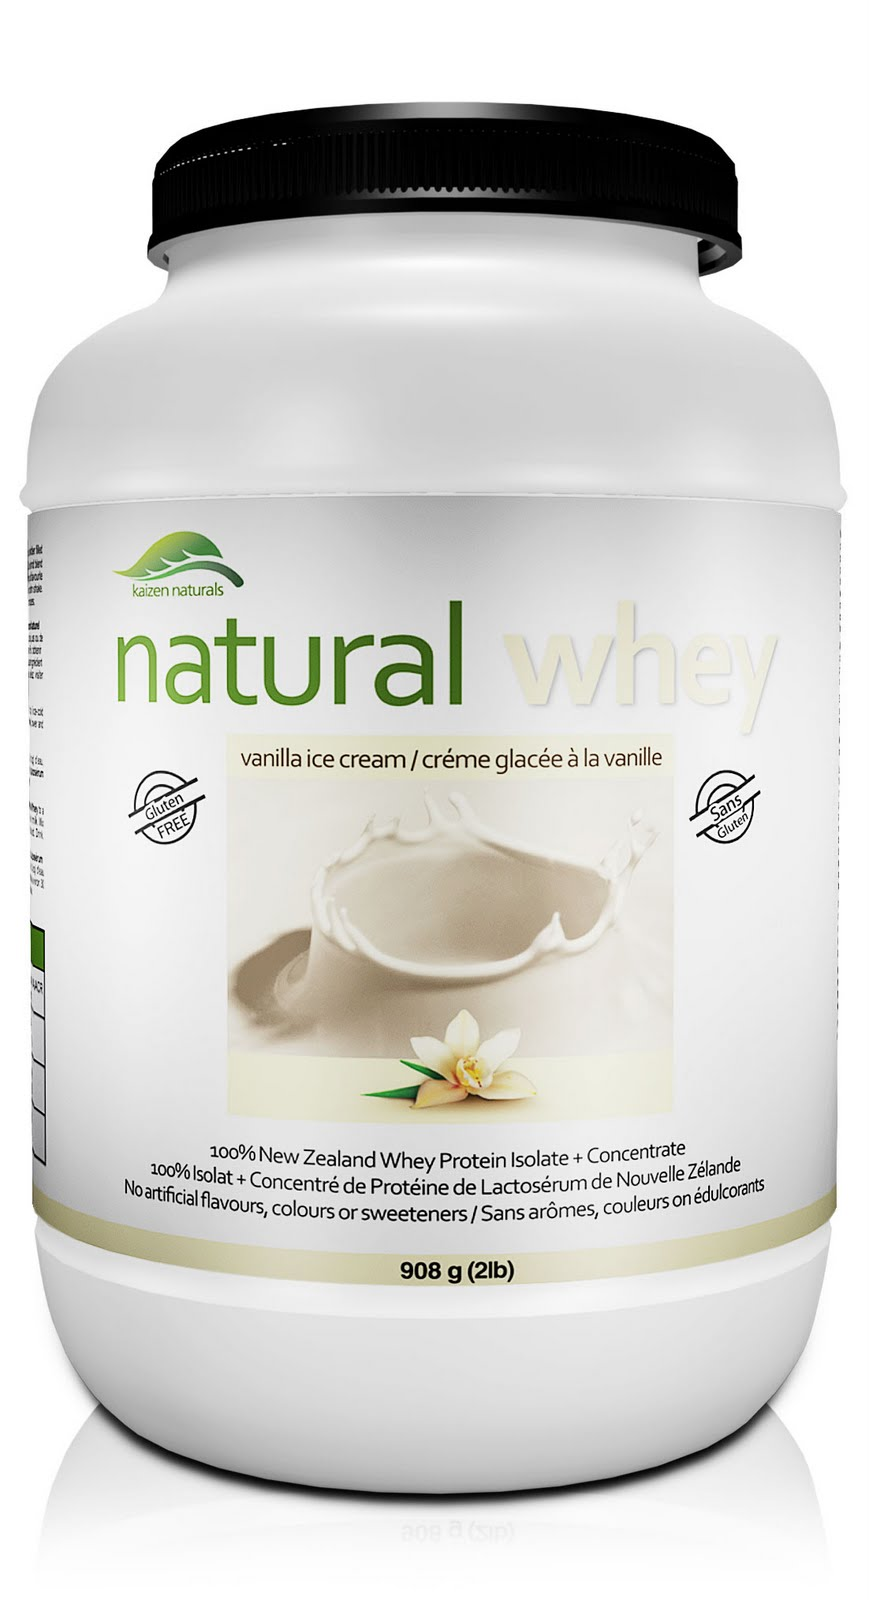 Kaizen Naturals Vanilla Whey Protein Isolate Review